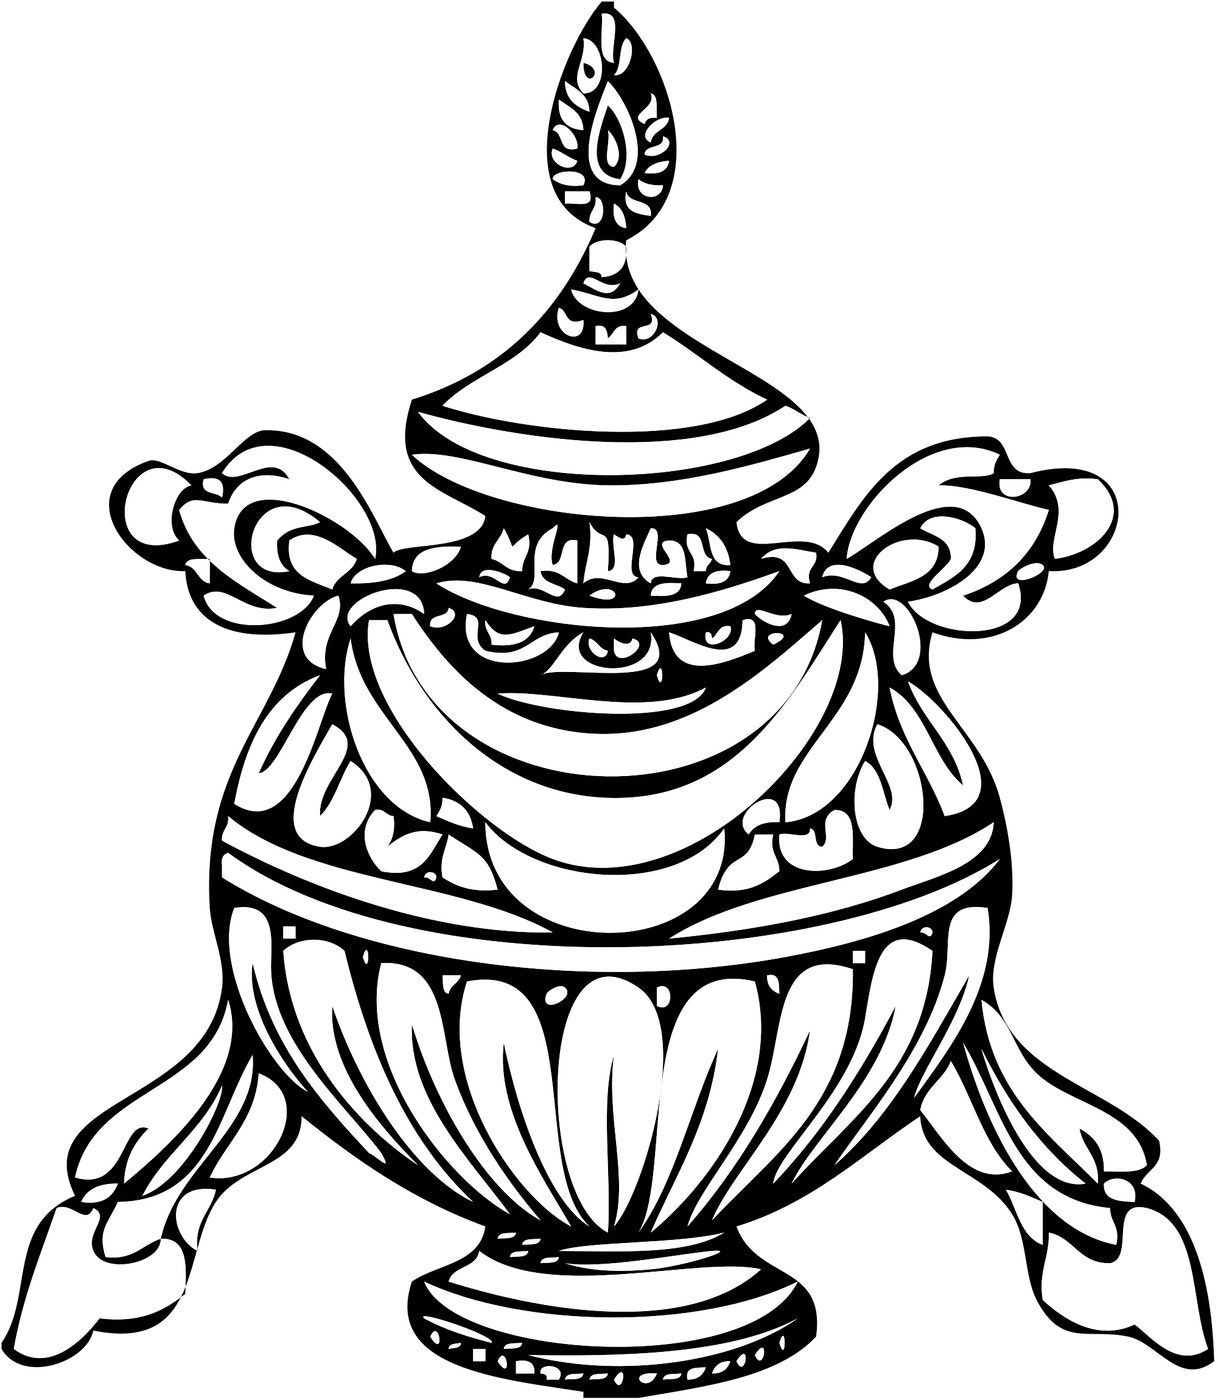 Treasure vase symbol religionfacts bumpa tibetan for vase wikimedia commons buycottarizona